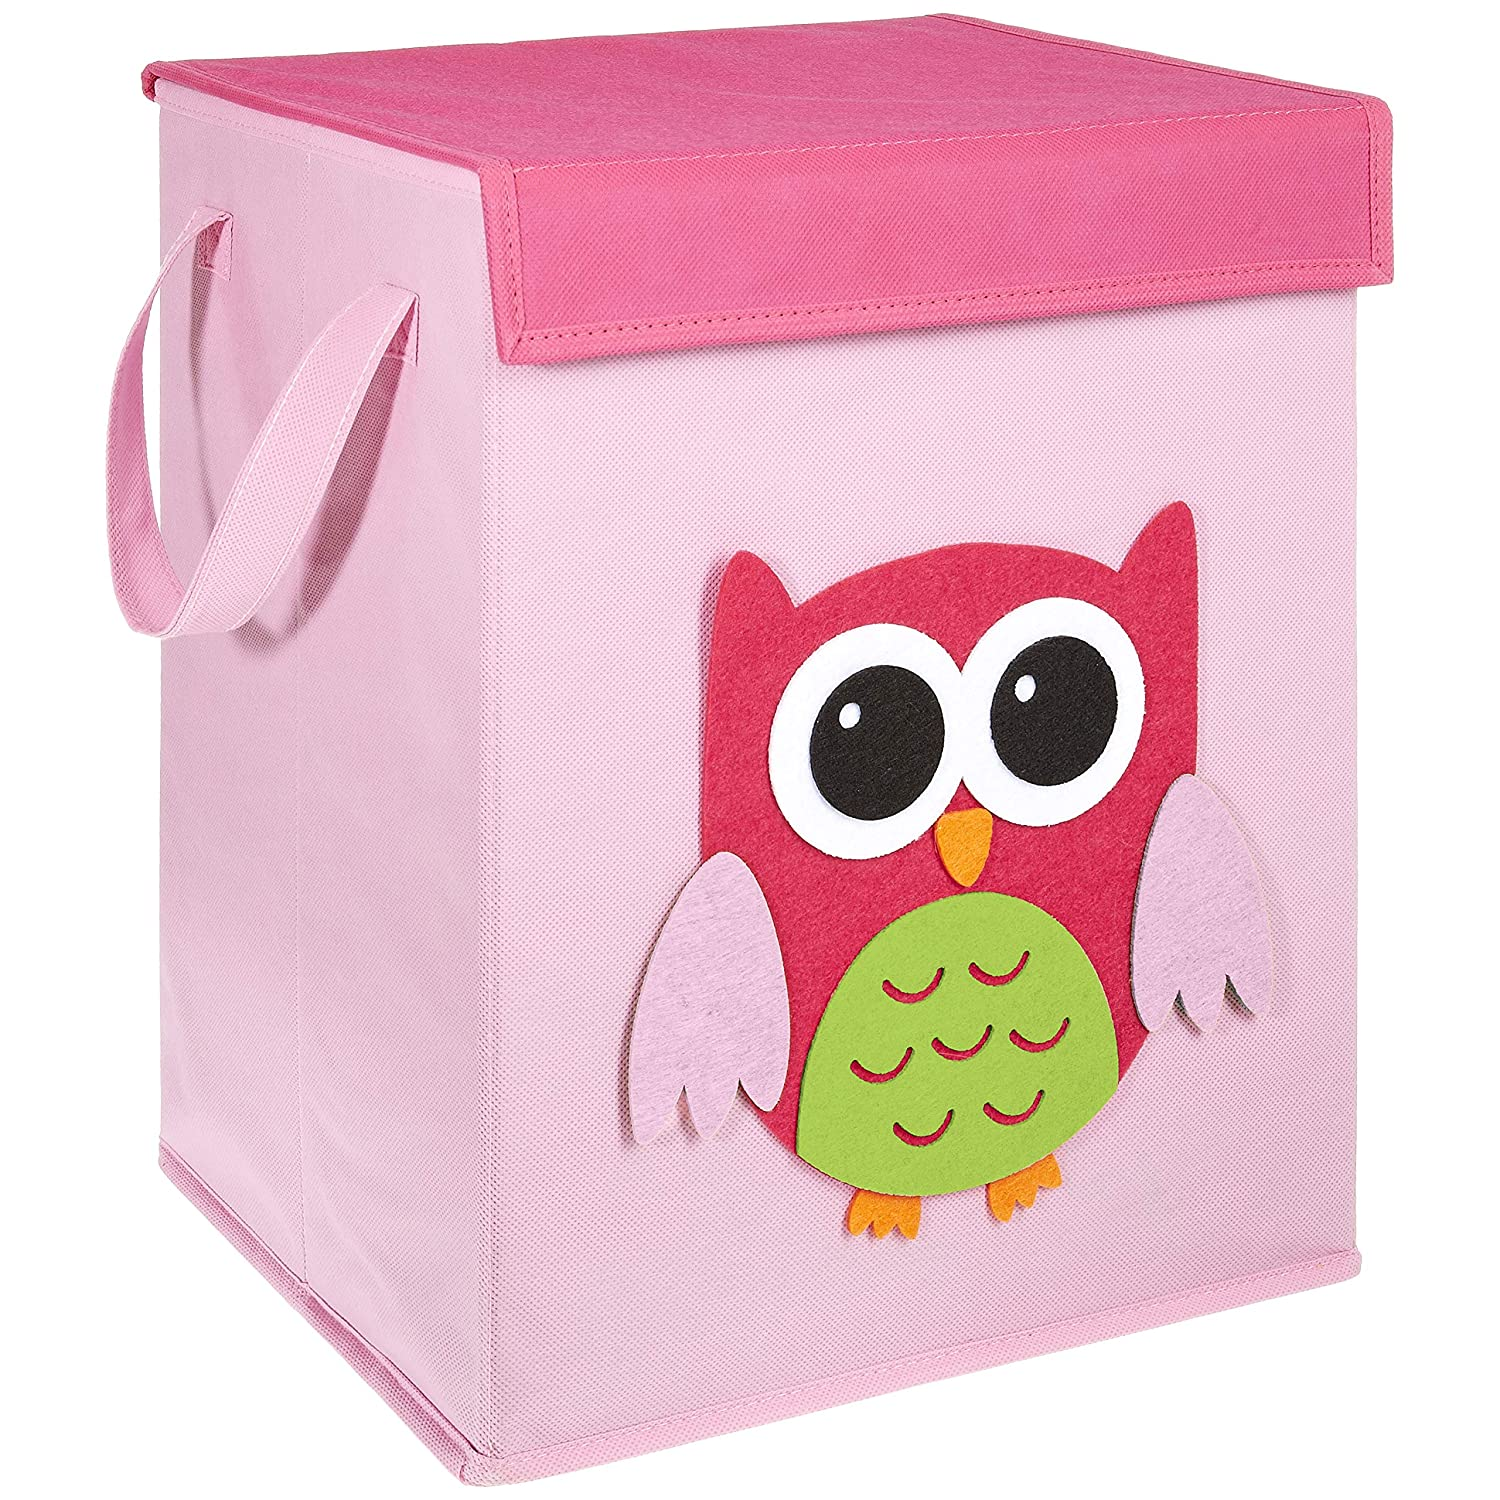 FABELBUNT® Foldable toy box with colorful motifs and lots of storage space and cover (37x 30x 26cm) Mercatura MWH-3033